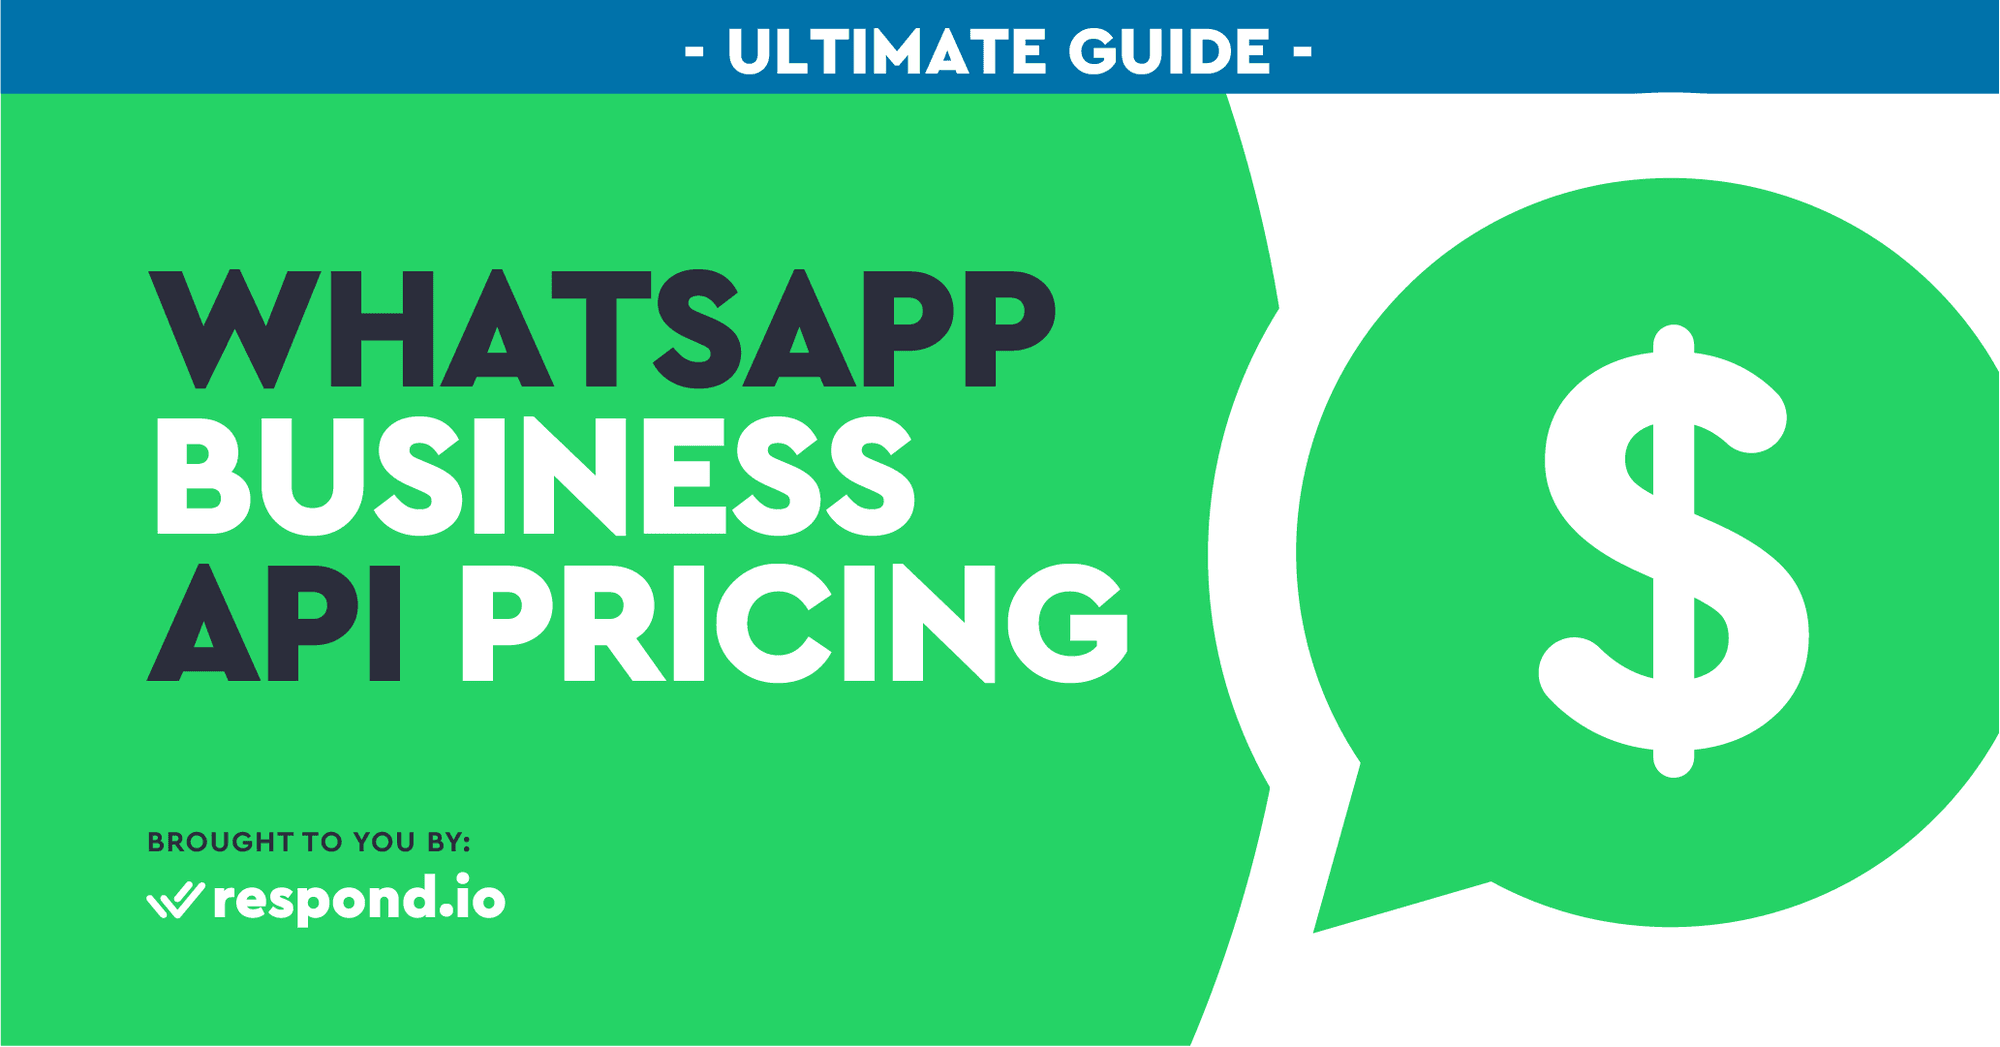 WhatsApp API Pricing: The Ultimate Guide to WhatsApp Business API Pricing (Mar 2021)